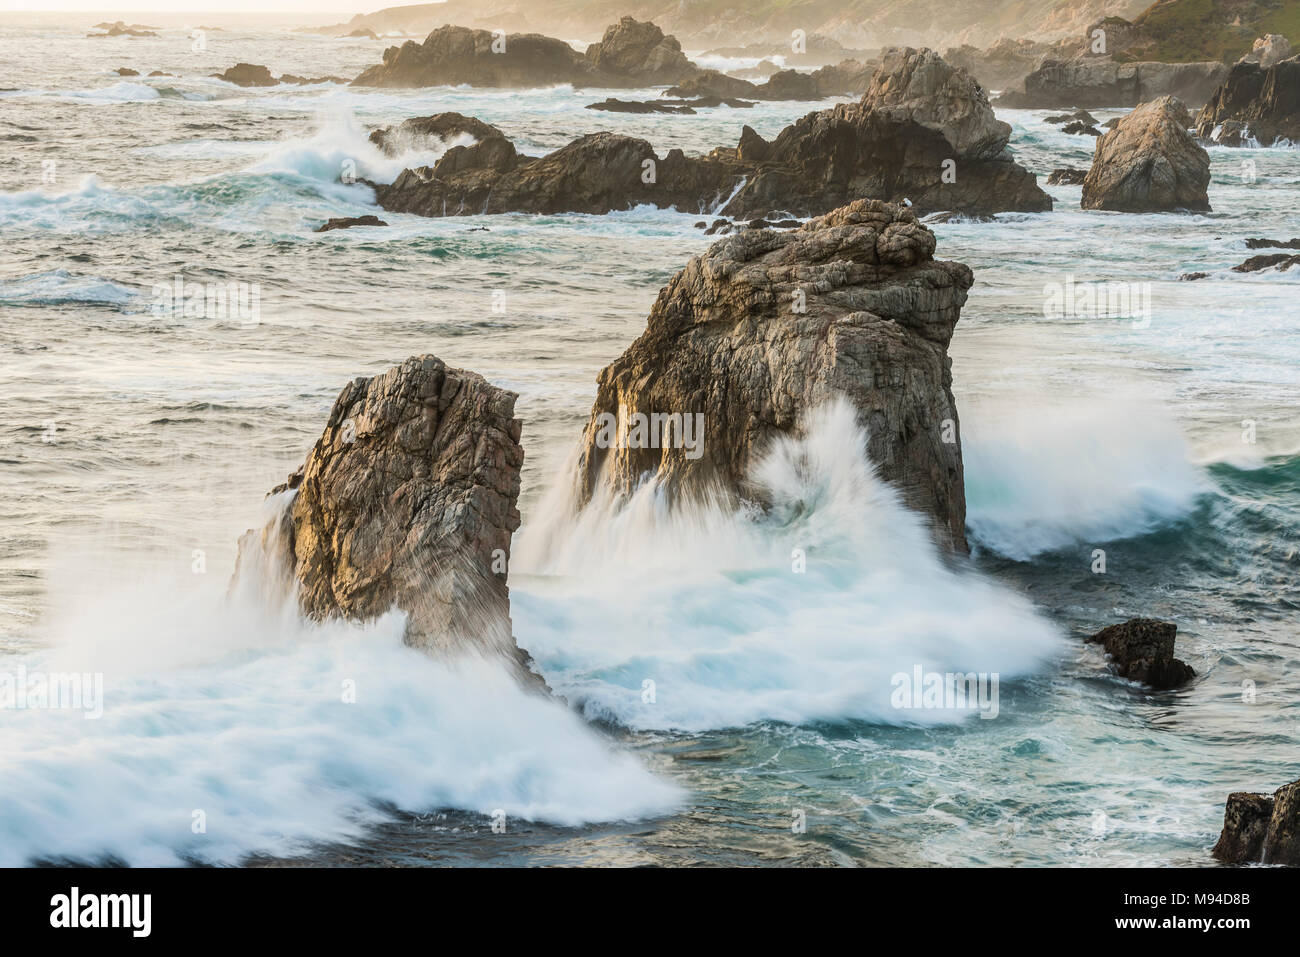 Surf and crashing waves, Garrapata State Park, CA, USA, by Dominique Braud/Dembinsky Photo Assoc - Stock Image